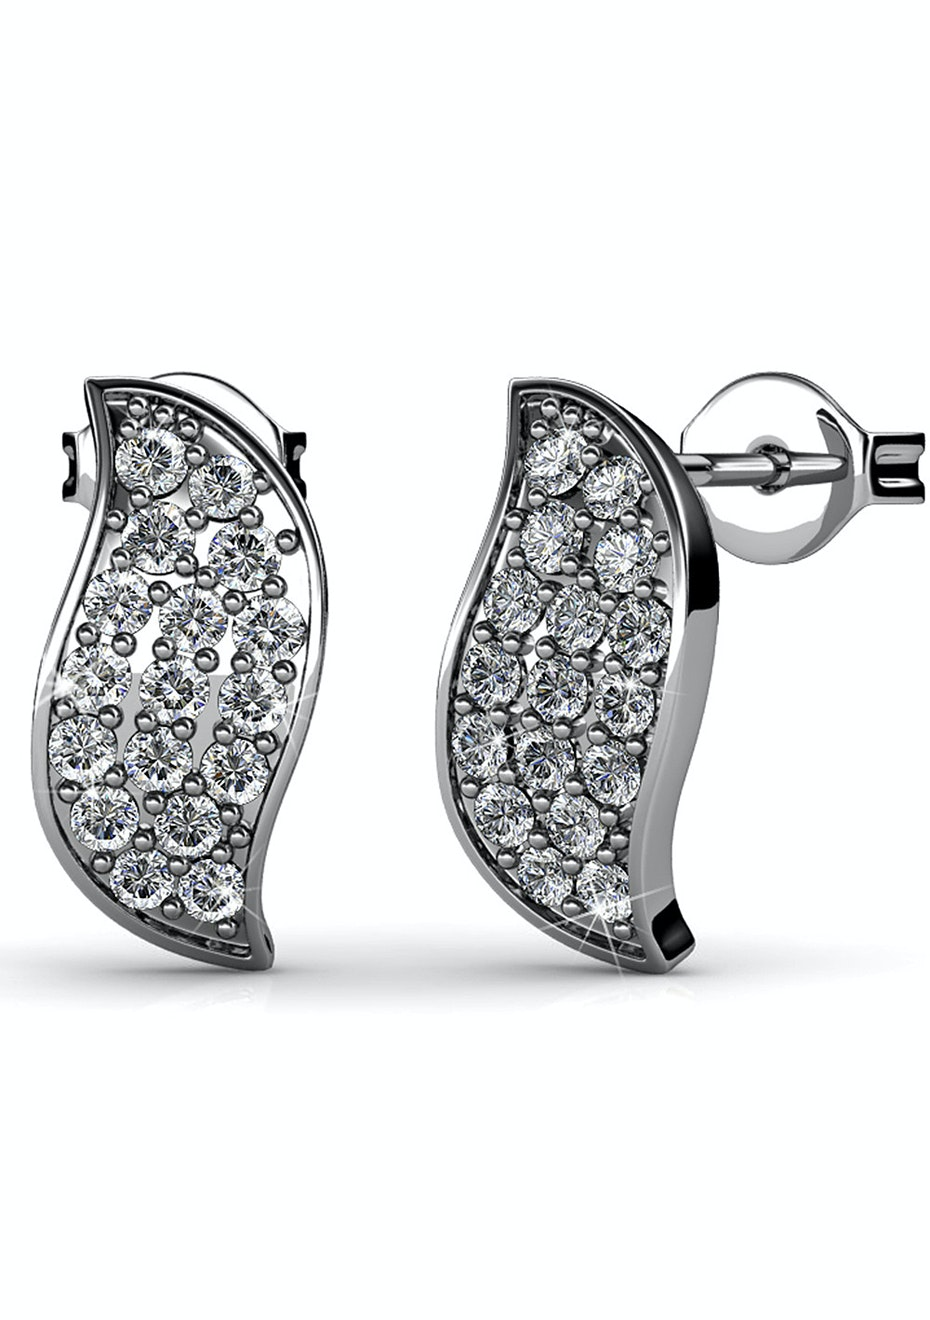 Iskandar Earrings Embellished with Crystals from Swarovski